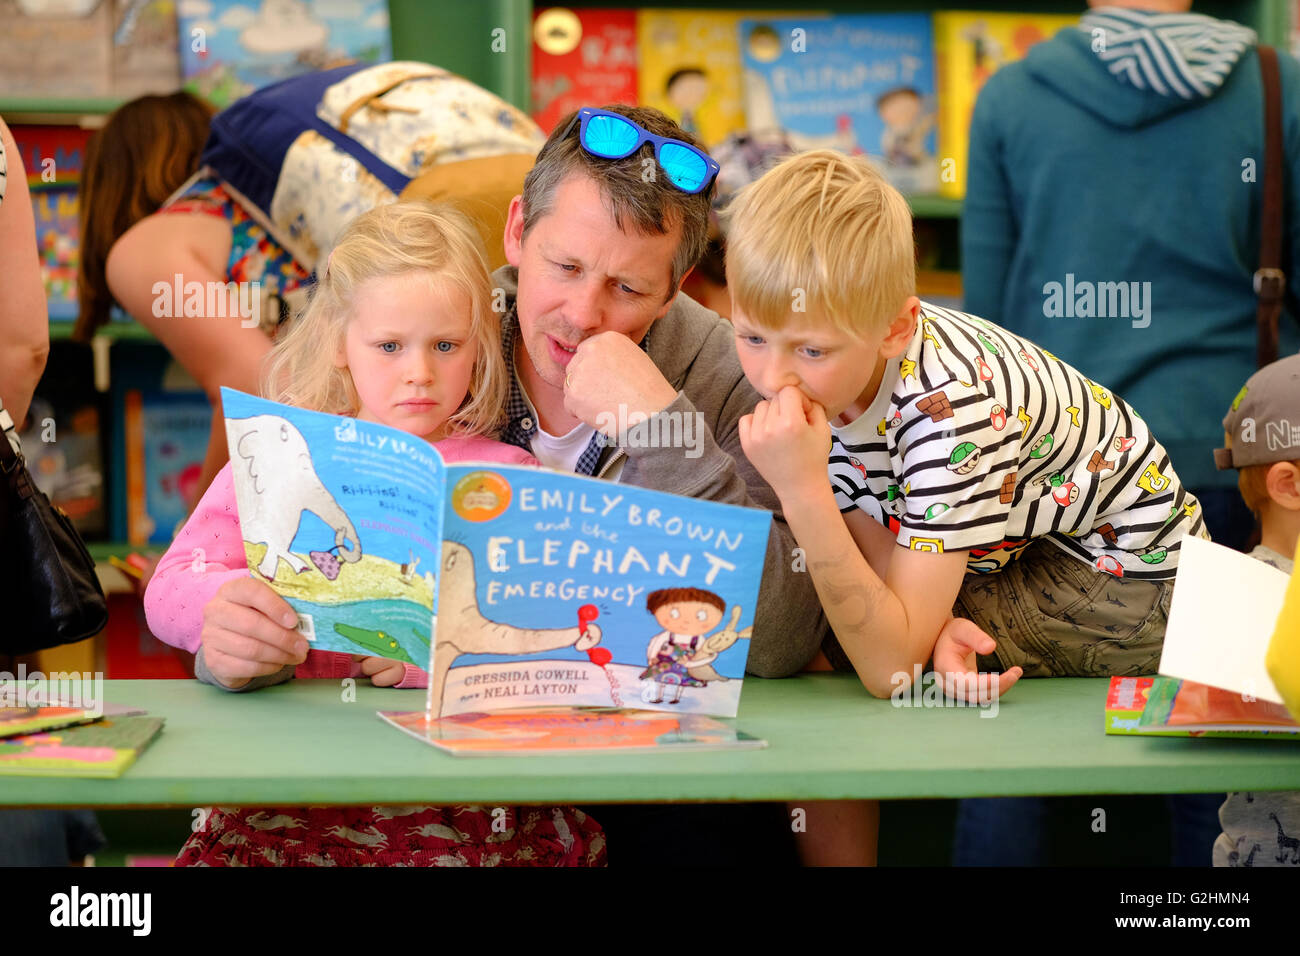 Hay Festival, Wales, UK - May 2016 -  A young family sits and reads together in the Hay Festival bookshop on Day - Stock Image